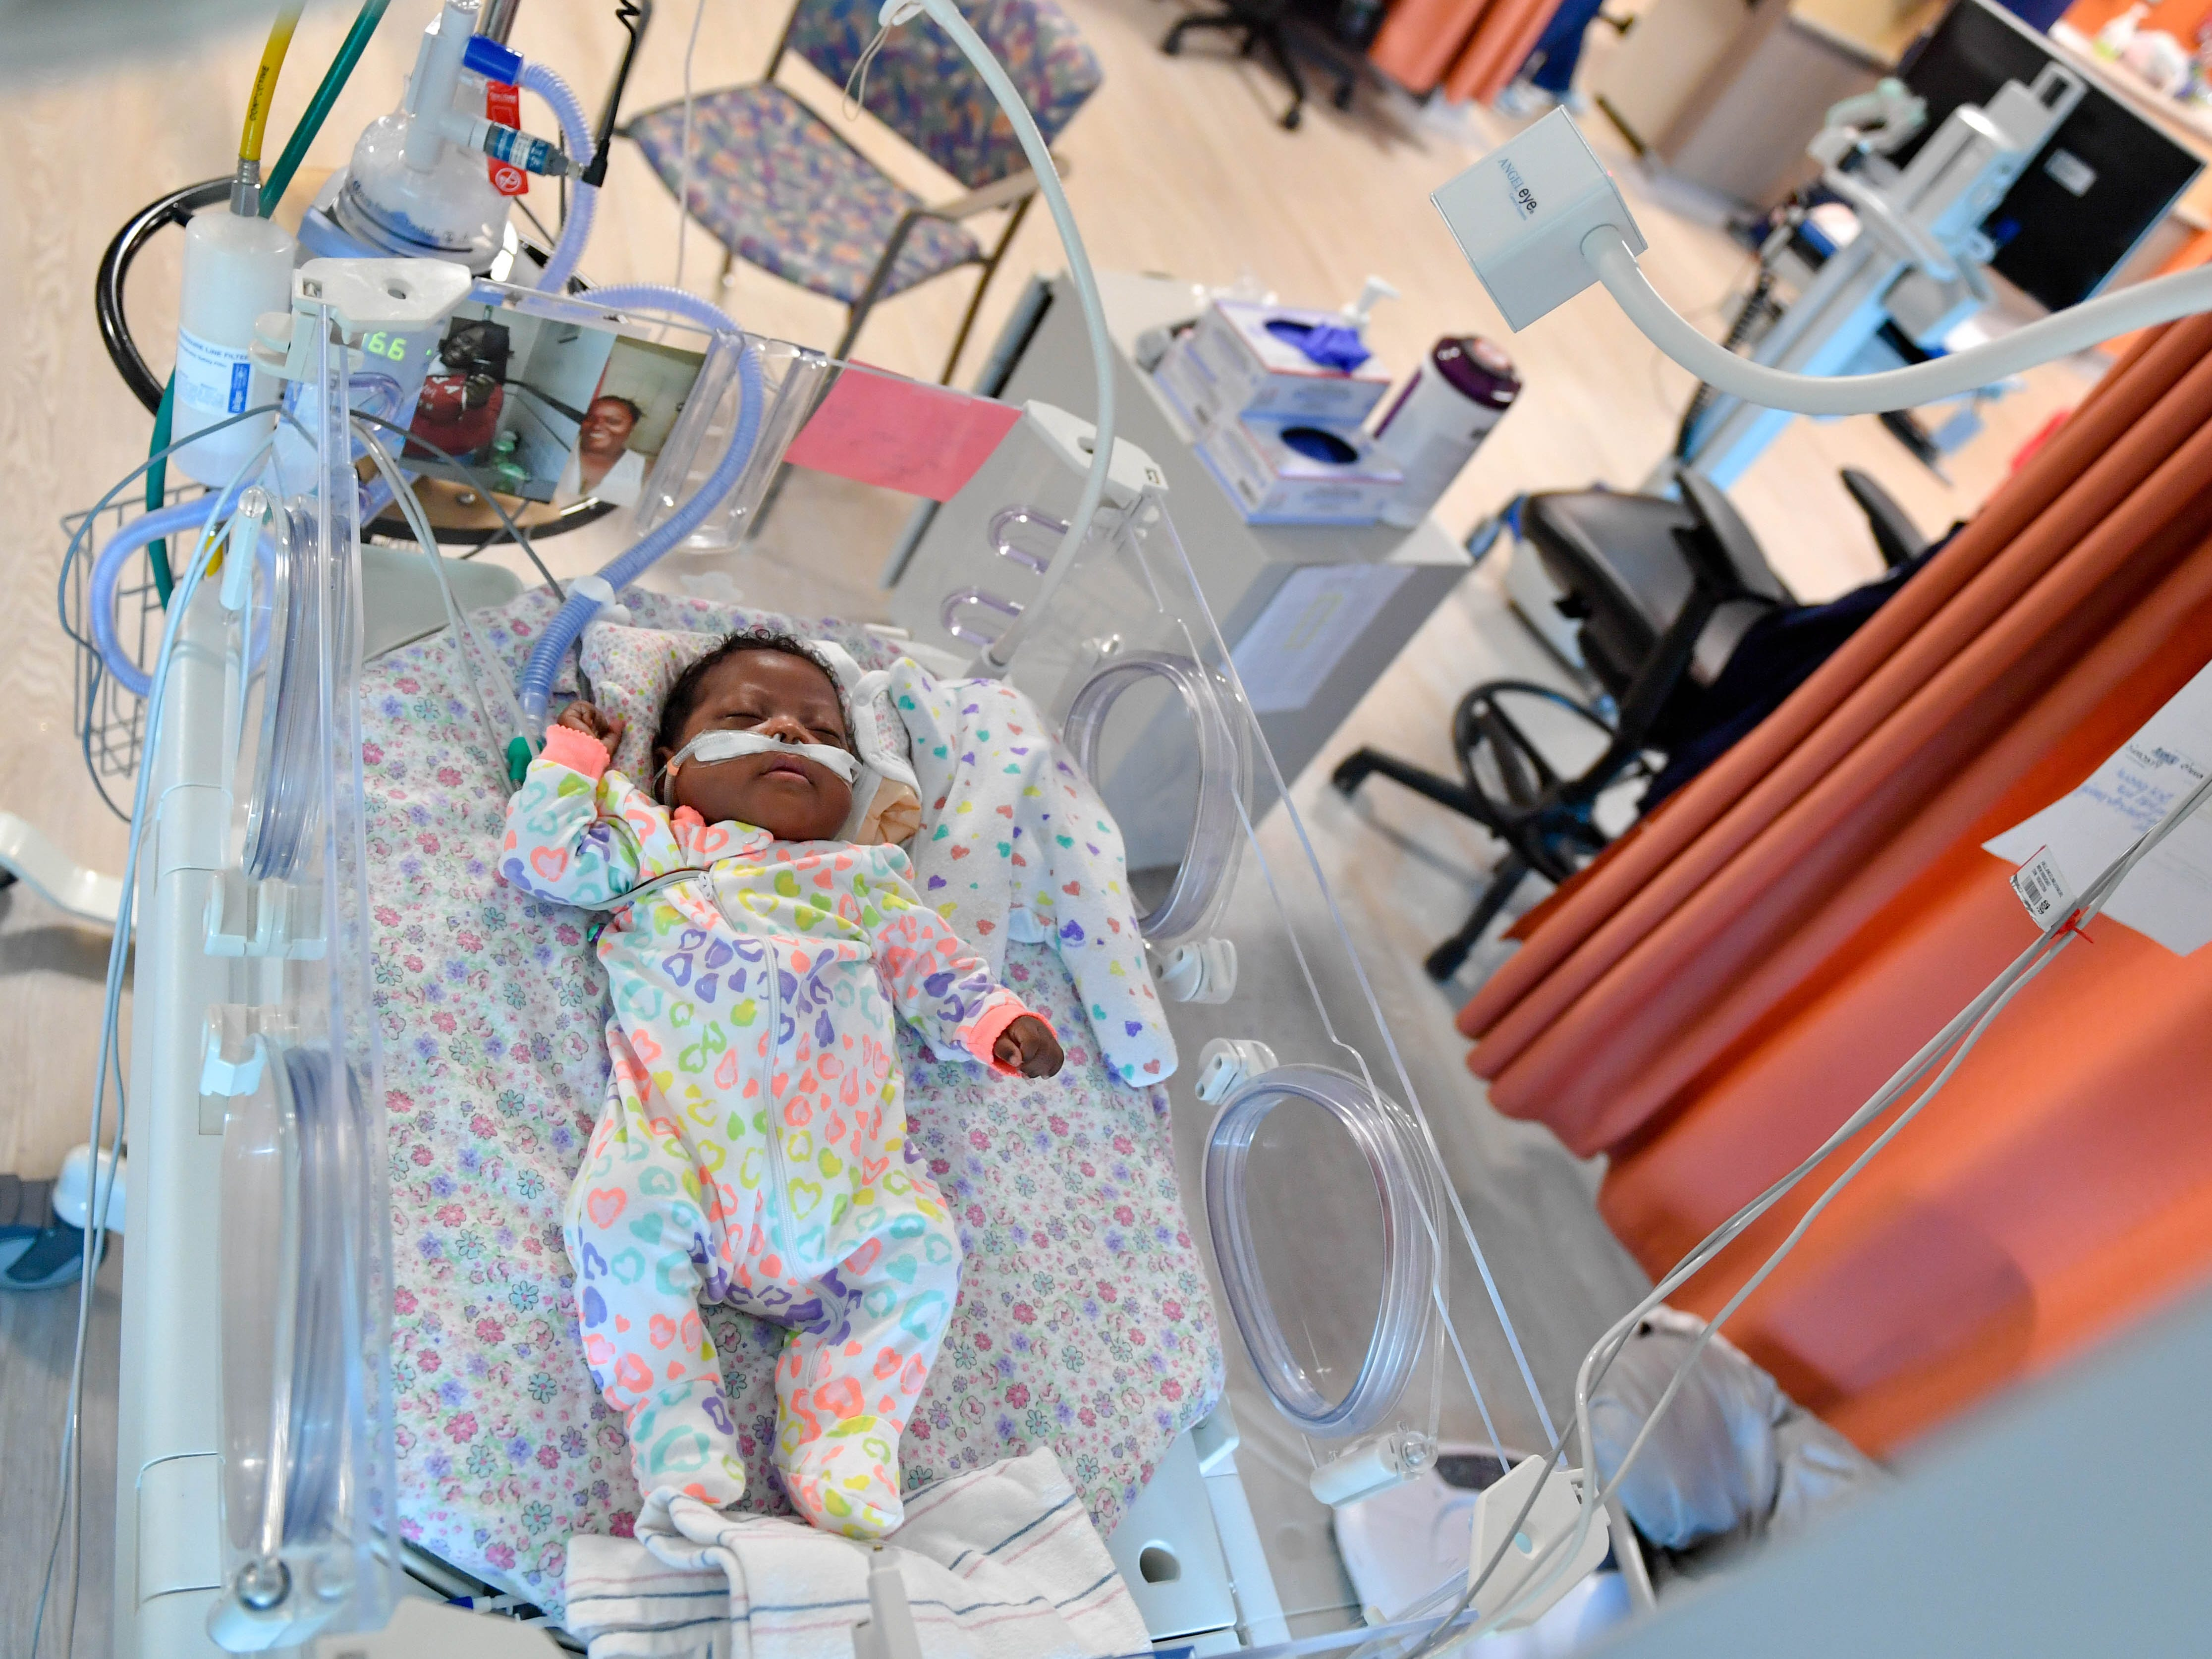 The Angel Eye cameras are positioned over the babies in the NICU. When parents activate the camera through WellSpan's website, they can instantly see what their child is doing at any point in time.